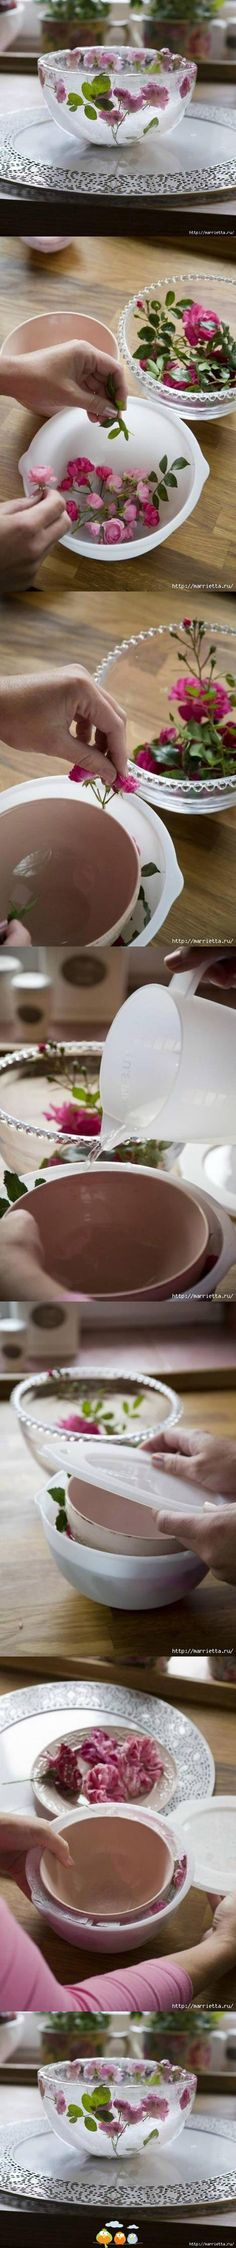 How to make a gorgeous bowl of ice - so incredibly pretty!